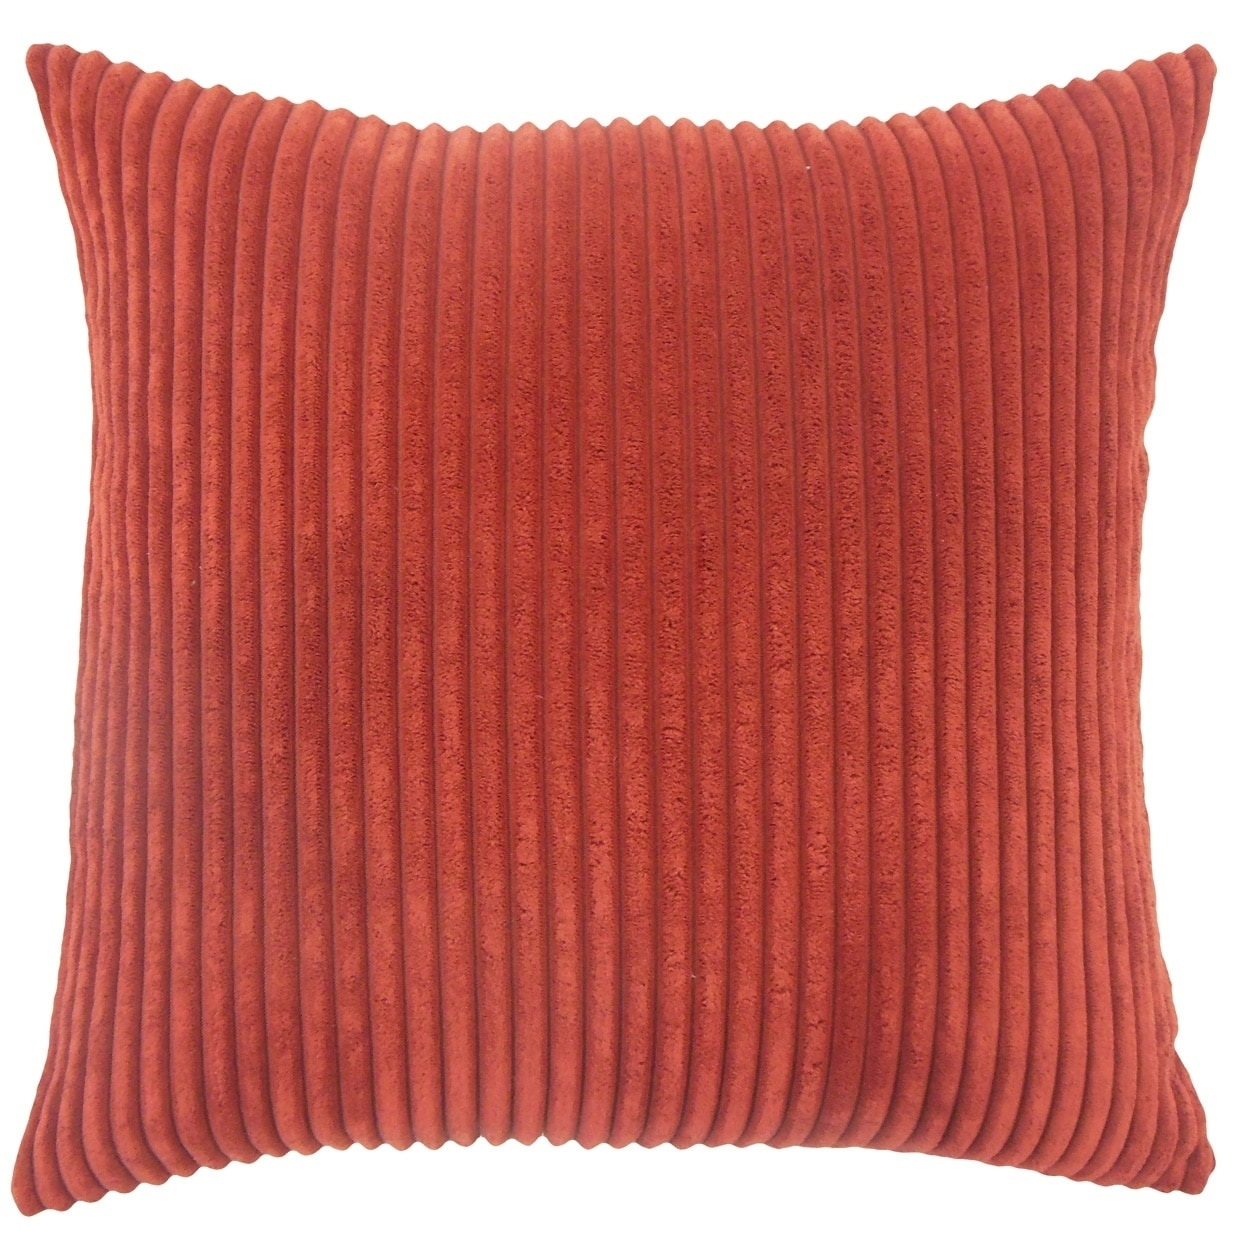 Calvine Solid Down Filled Throw Pillow in Crimson (Square - 20 x 20)